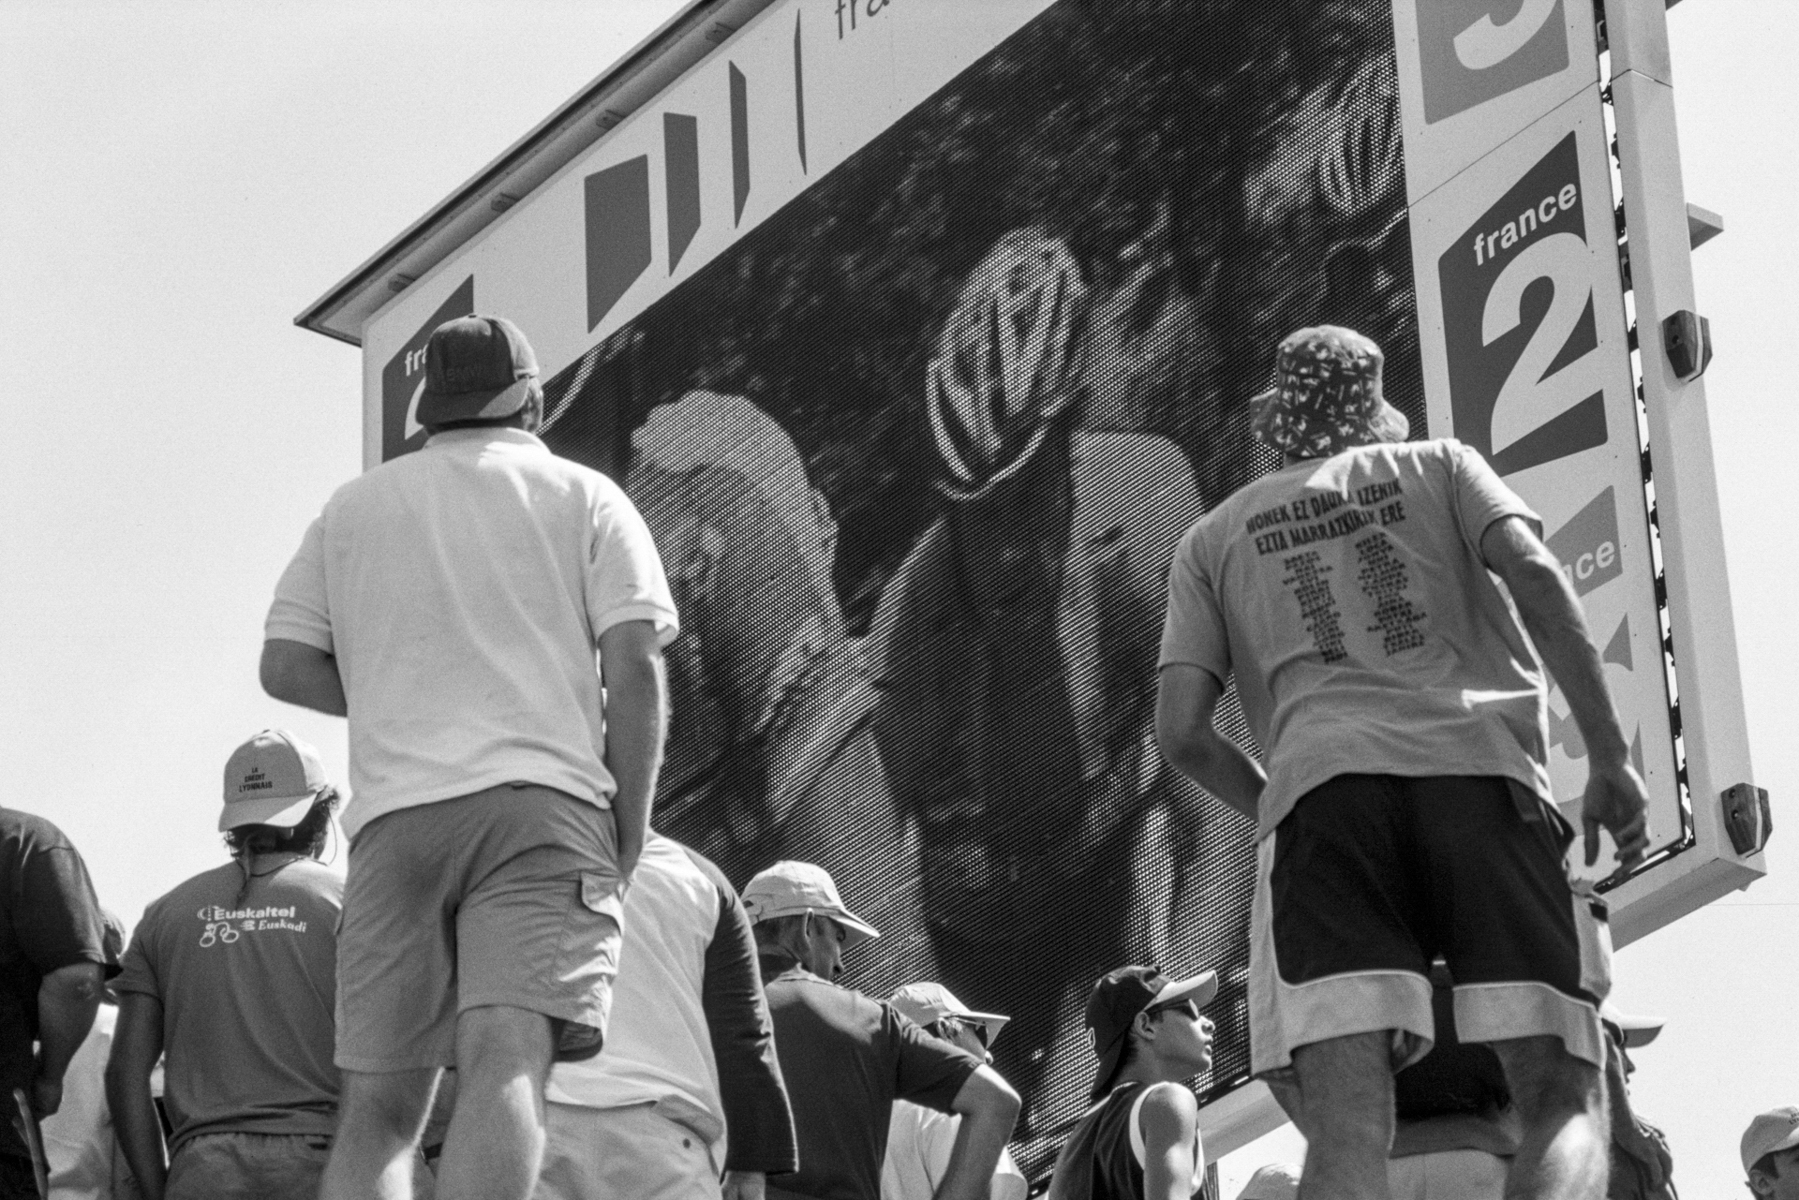 Tour de France 2005 Follow the Tour on the big screen and don't miss a moment. Pour ne rien manquer du Tour, on a les yeux rivés sur les écrans géants. Public Viewing während der Tour – bloß keinen Moment verpassen. Para no perderse ni un momento, los adminadores siguen los acontecimientos desde pantallas gigantes.